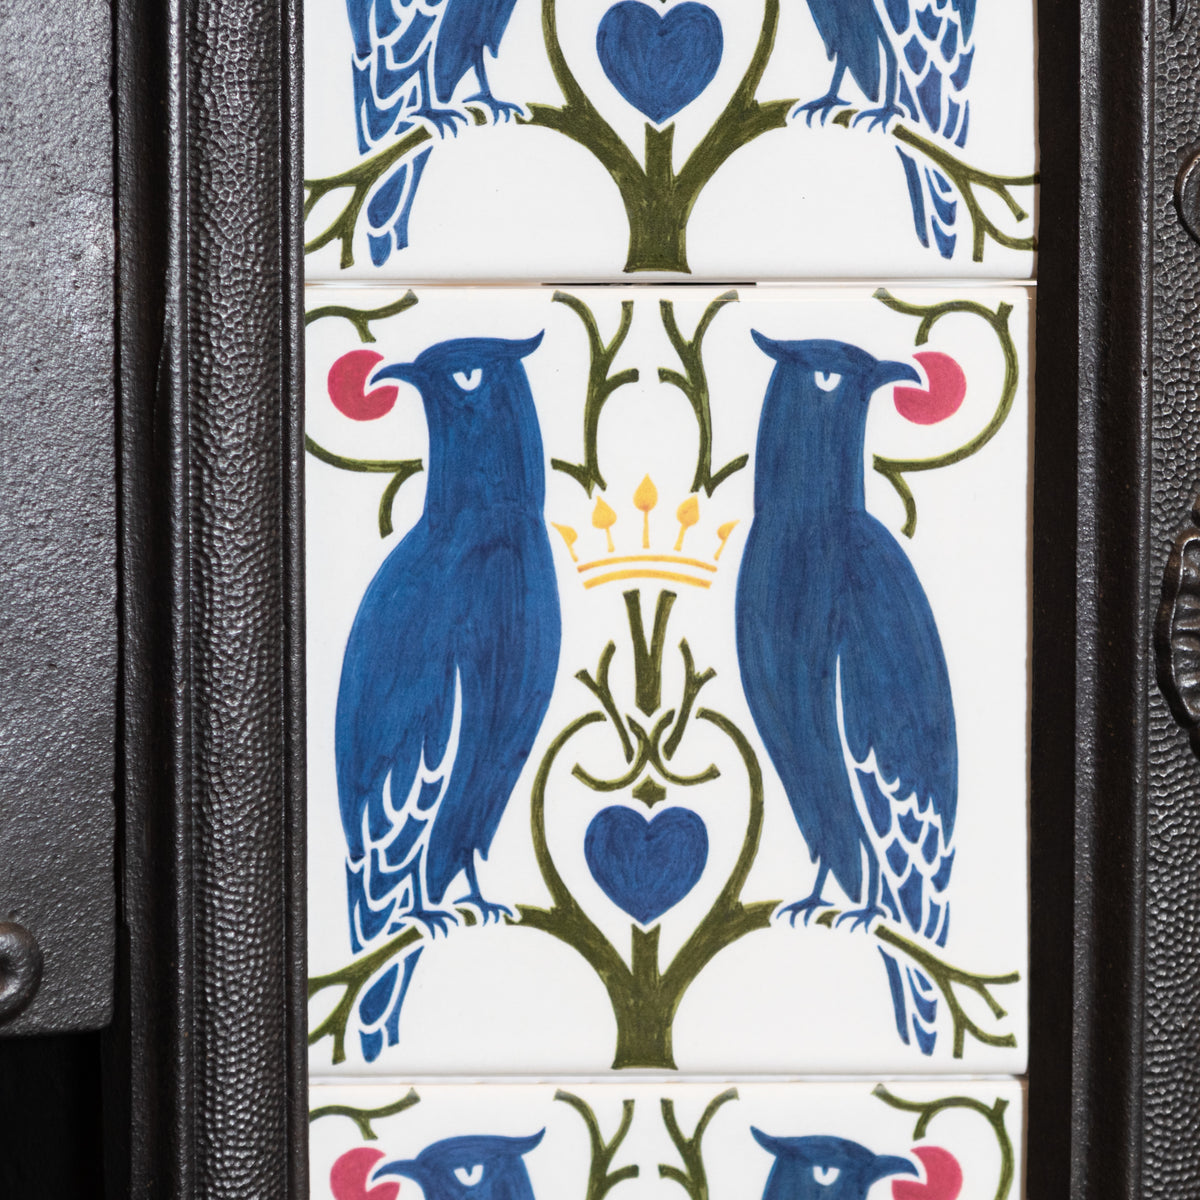 Antique Victorian Cast Iron Insert With Vibrant Blue Bird & Floral Tiles | The Architectural Forum